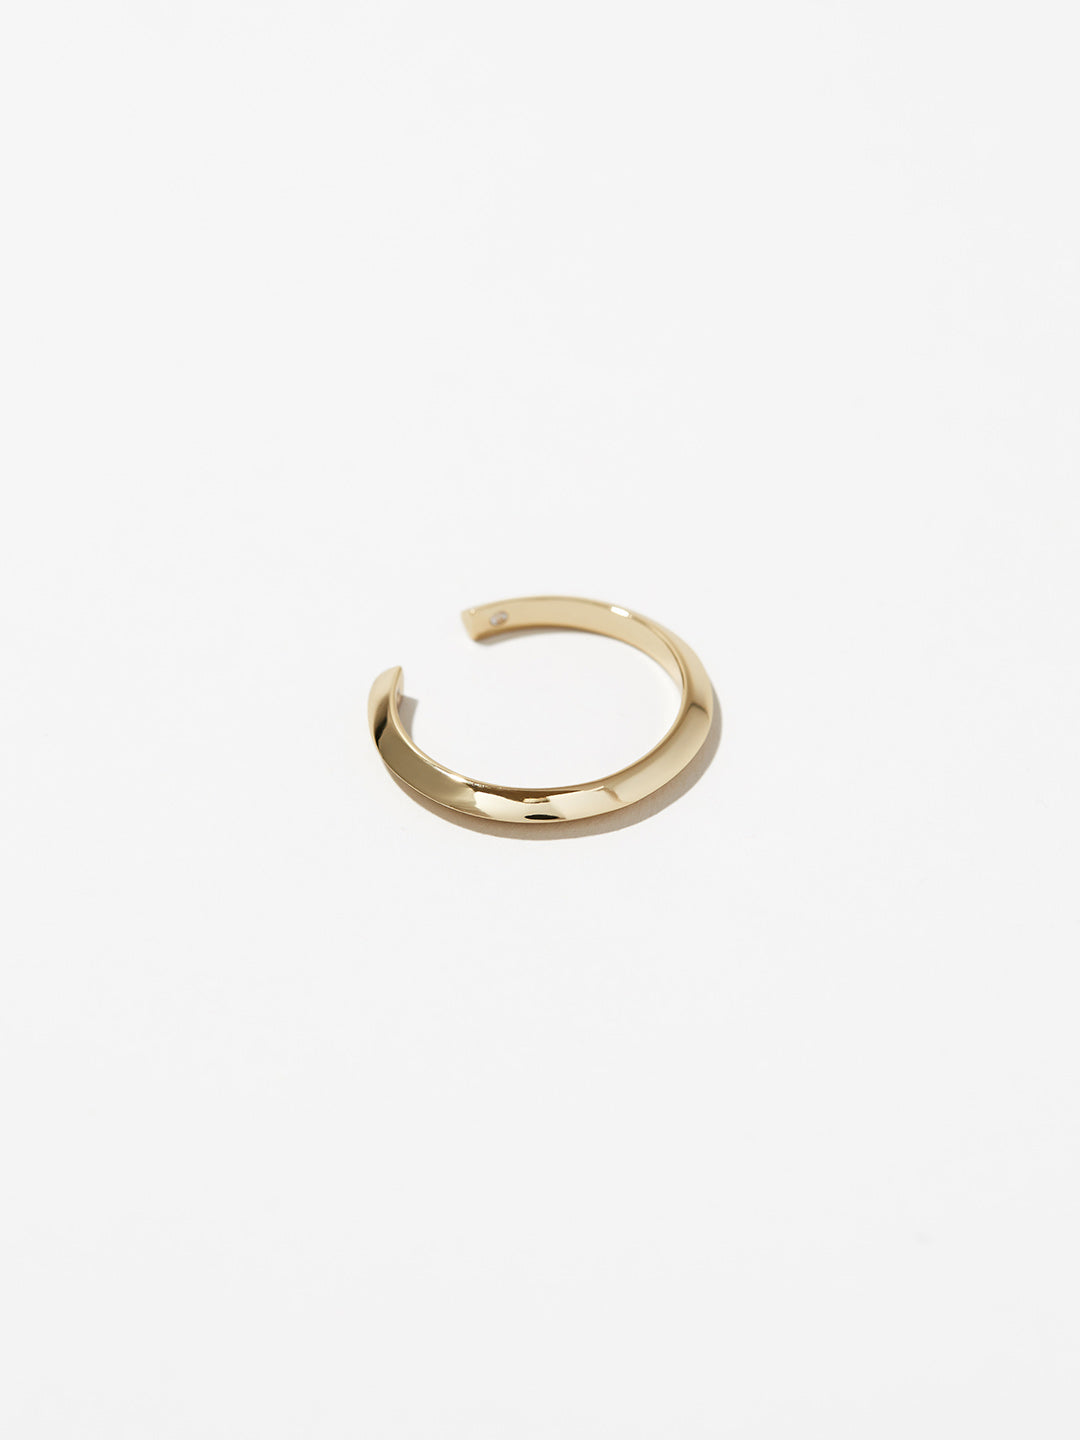 Ana Luisa Jewelry Rings Adjustable Ring Minimalist Ring Ettore Gold